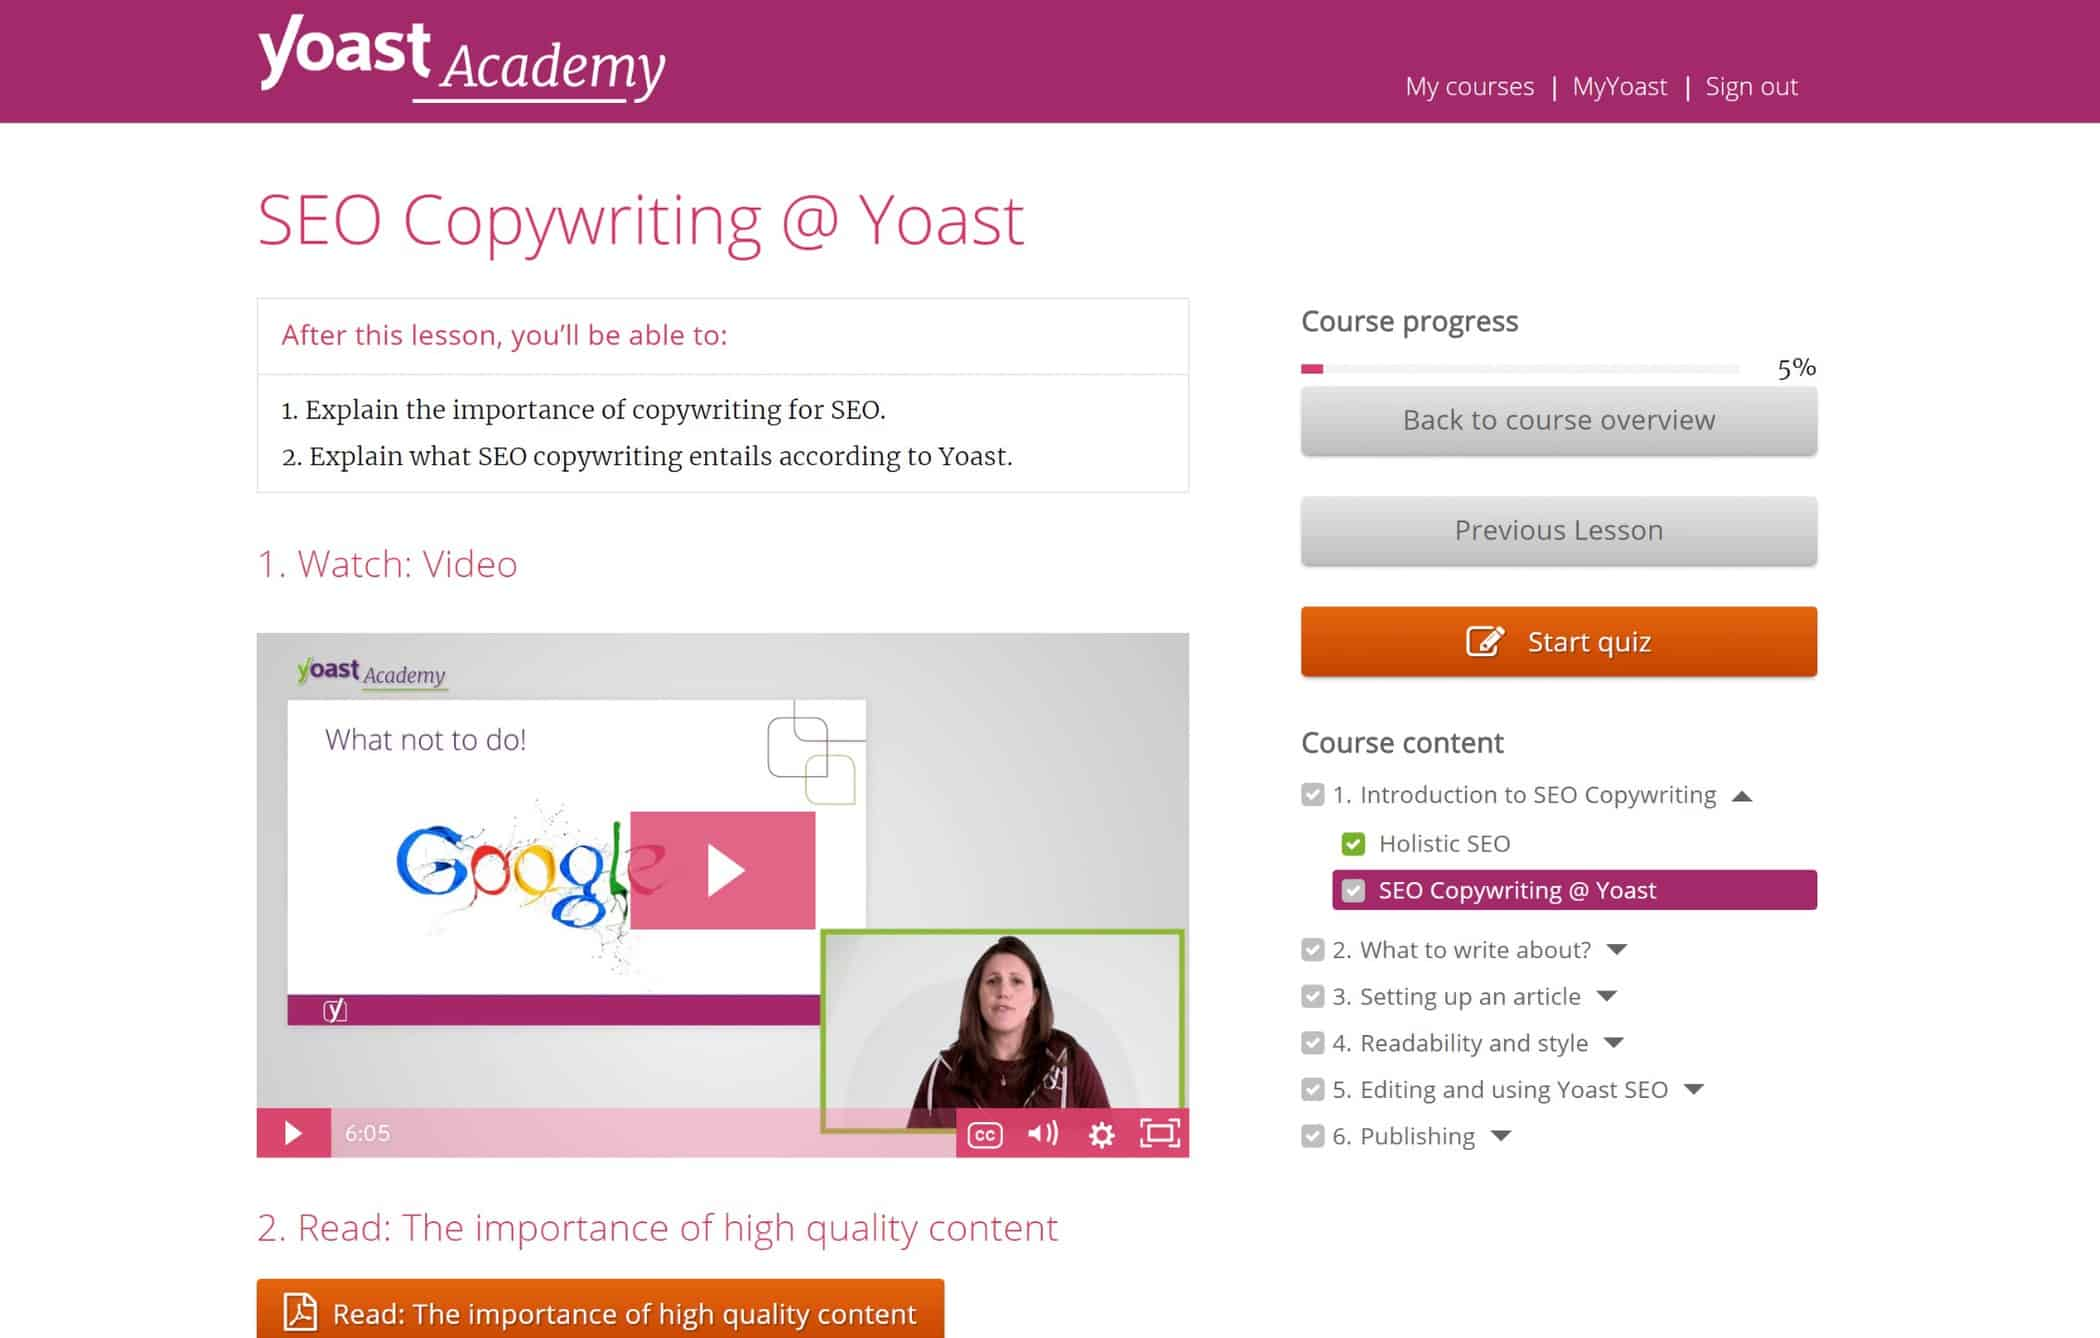 Yoast Academy topic page example